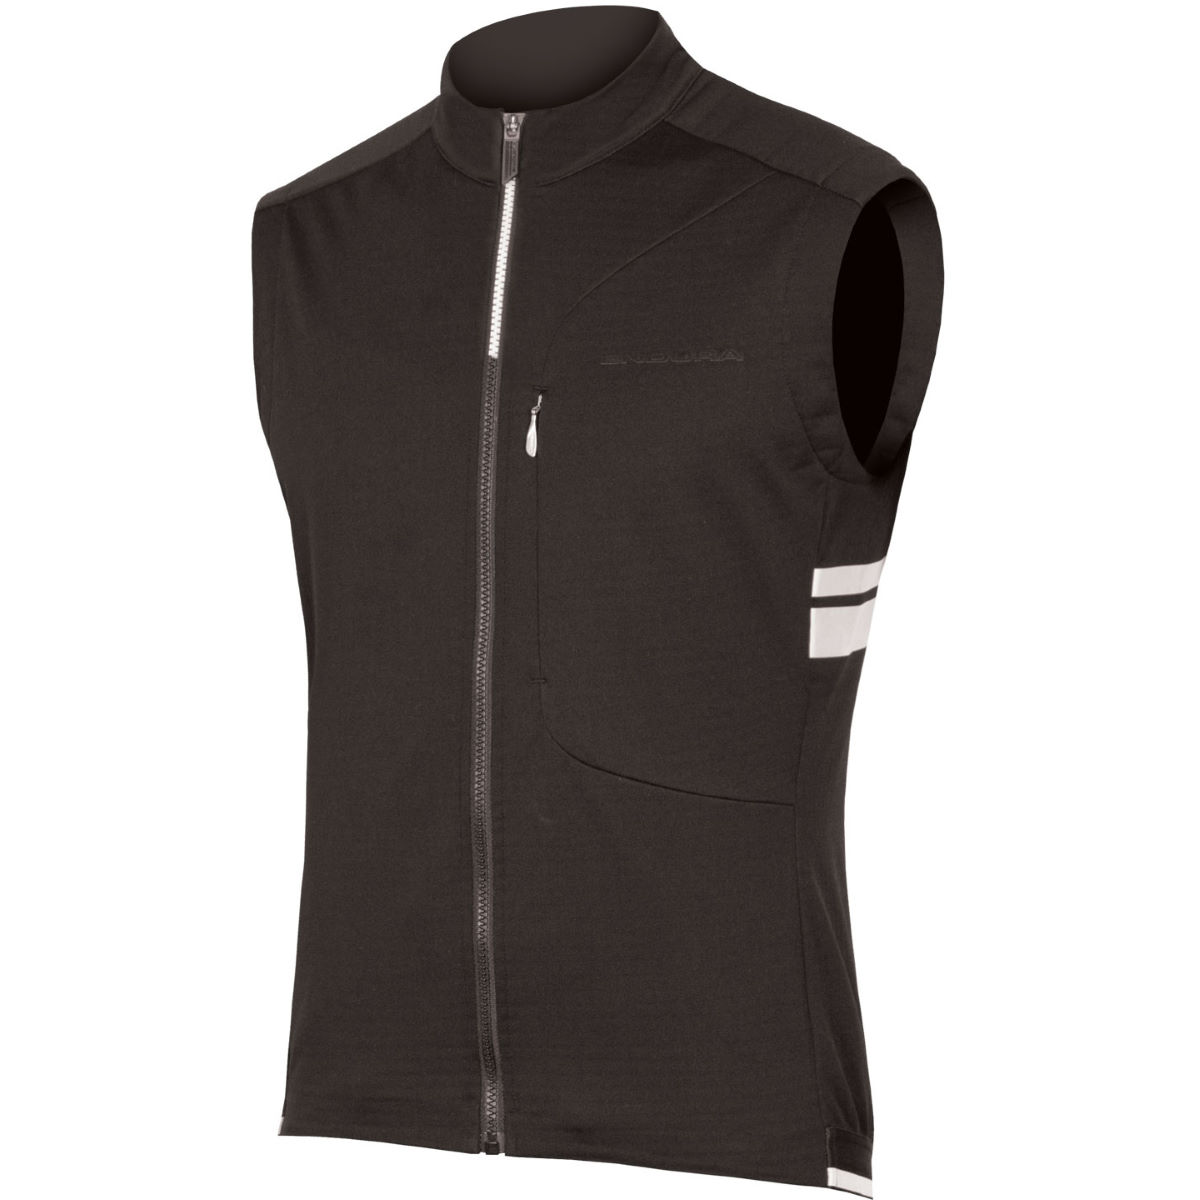 Endura Windchill Gilet - XL Black | Cycling Gilets